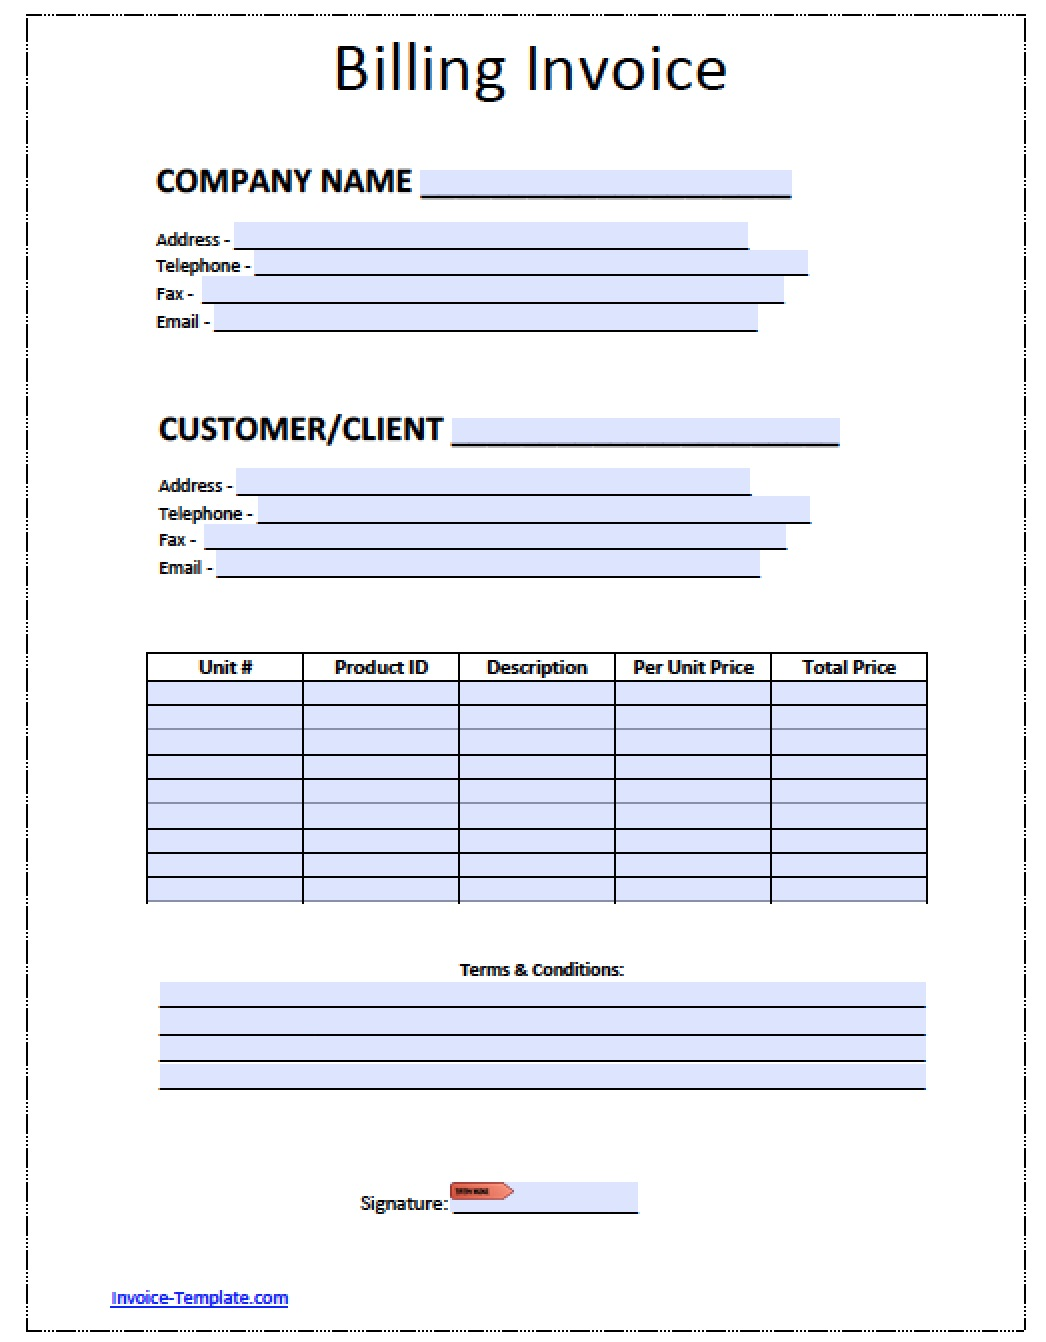 Coachoutletonlineplusus  Stunning Billing Invoice Invoices Faq U Cloudflare Support Billing  With Glamorous Free Billing Invoice Template  Excel  Pdf  Word Doc  Billing With Endearing Receipt Information Also Create Receipts For Expenses In Addition Receipt Photo And What Is Warehouse Receipt As Well As Menards Rebate Receipt Additionally We Acknowledge Receipt Of From Happytomco With Coachoutletonlineplusus  Glamorous Billing Invoice Invoices Faq U Cloudflare Support Billing  With Endearing Free Billing Invoice Template  Excel  Pdf  Word Doc  Billing And Stunning Receipt Information Also Create Receipts For Expenses In Addition Receipt Photo From Happytomco